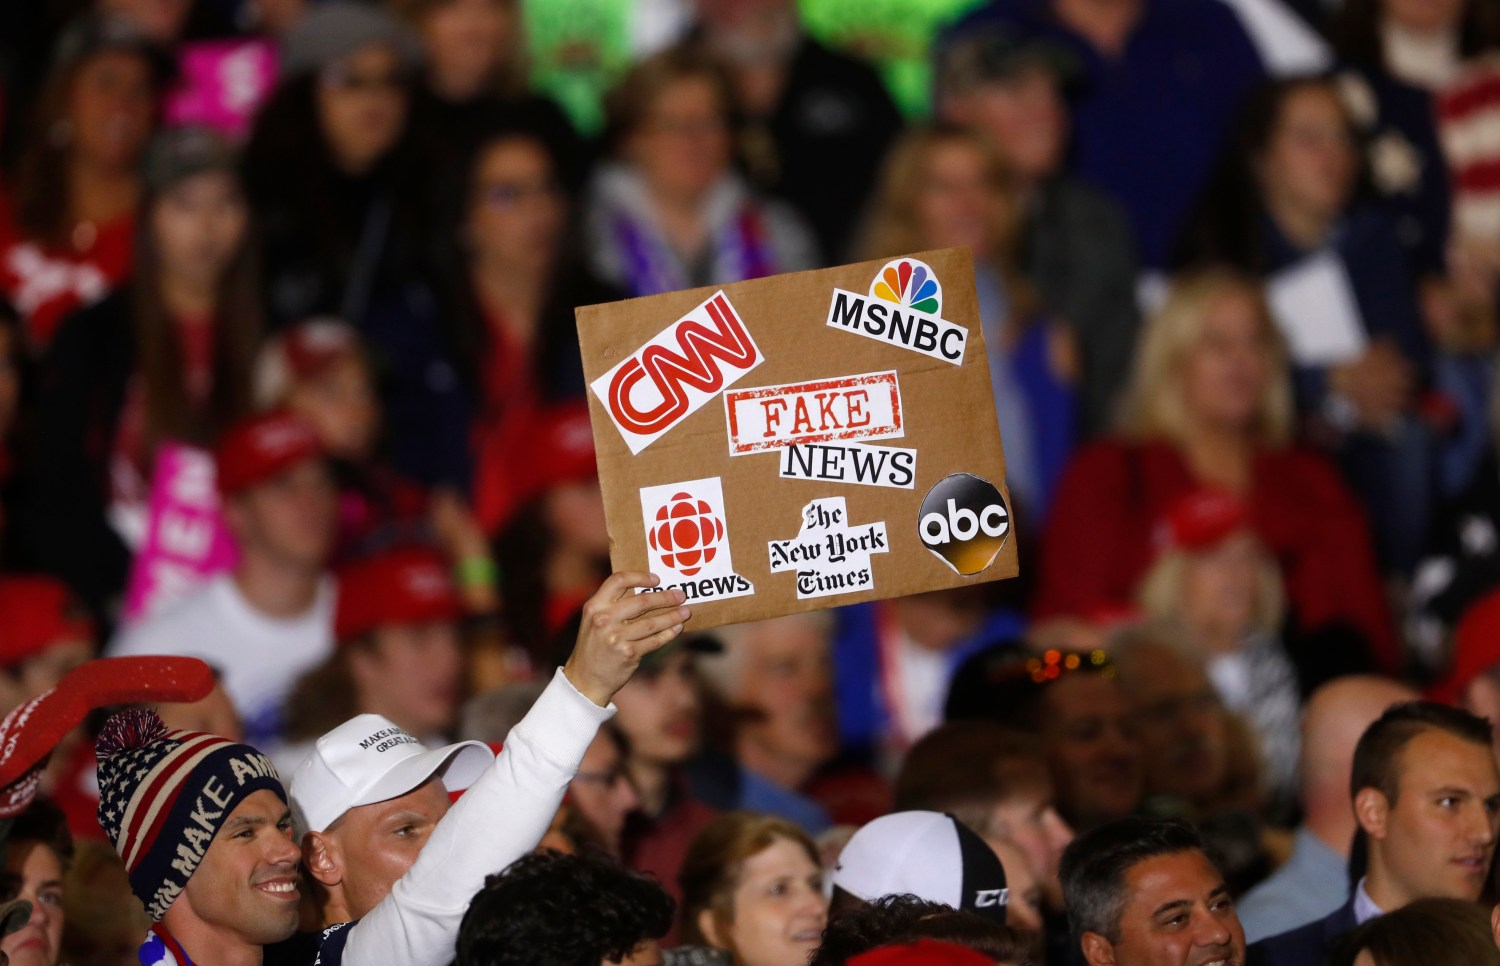 People believe politicians are most responsible for made-up news, but journalists are the ones who must fix it